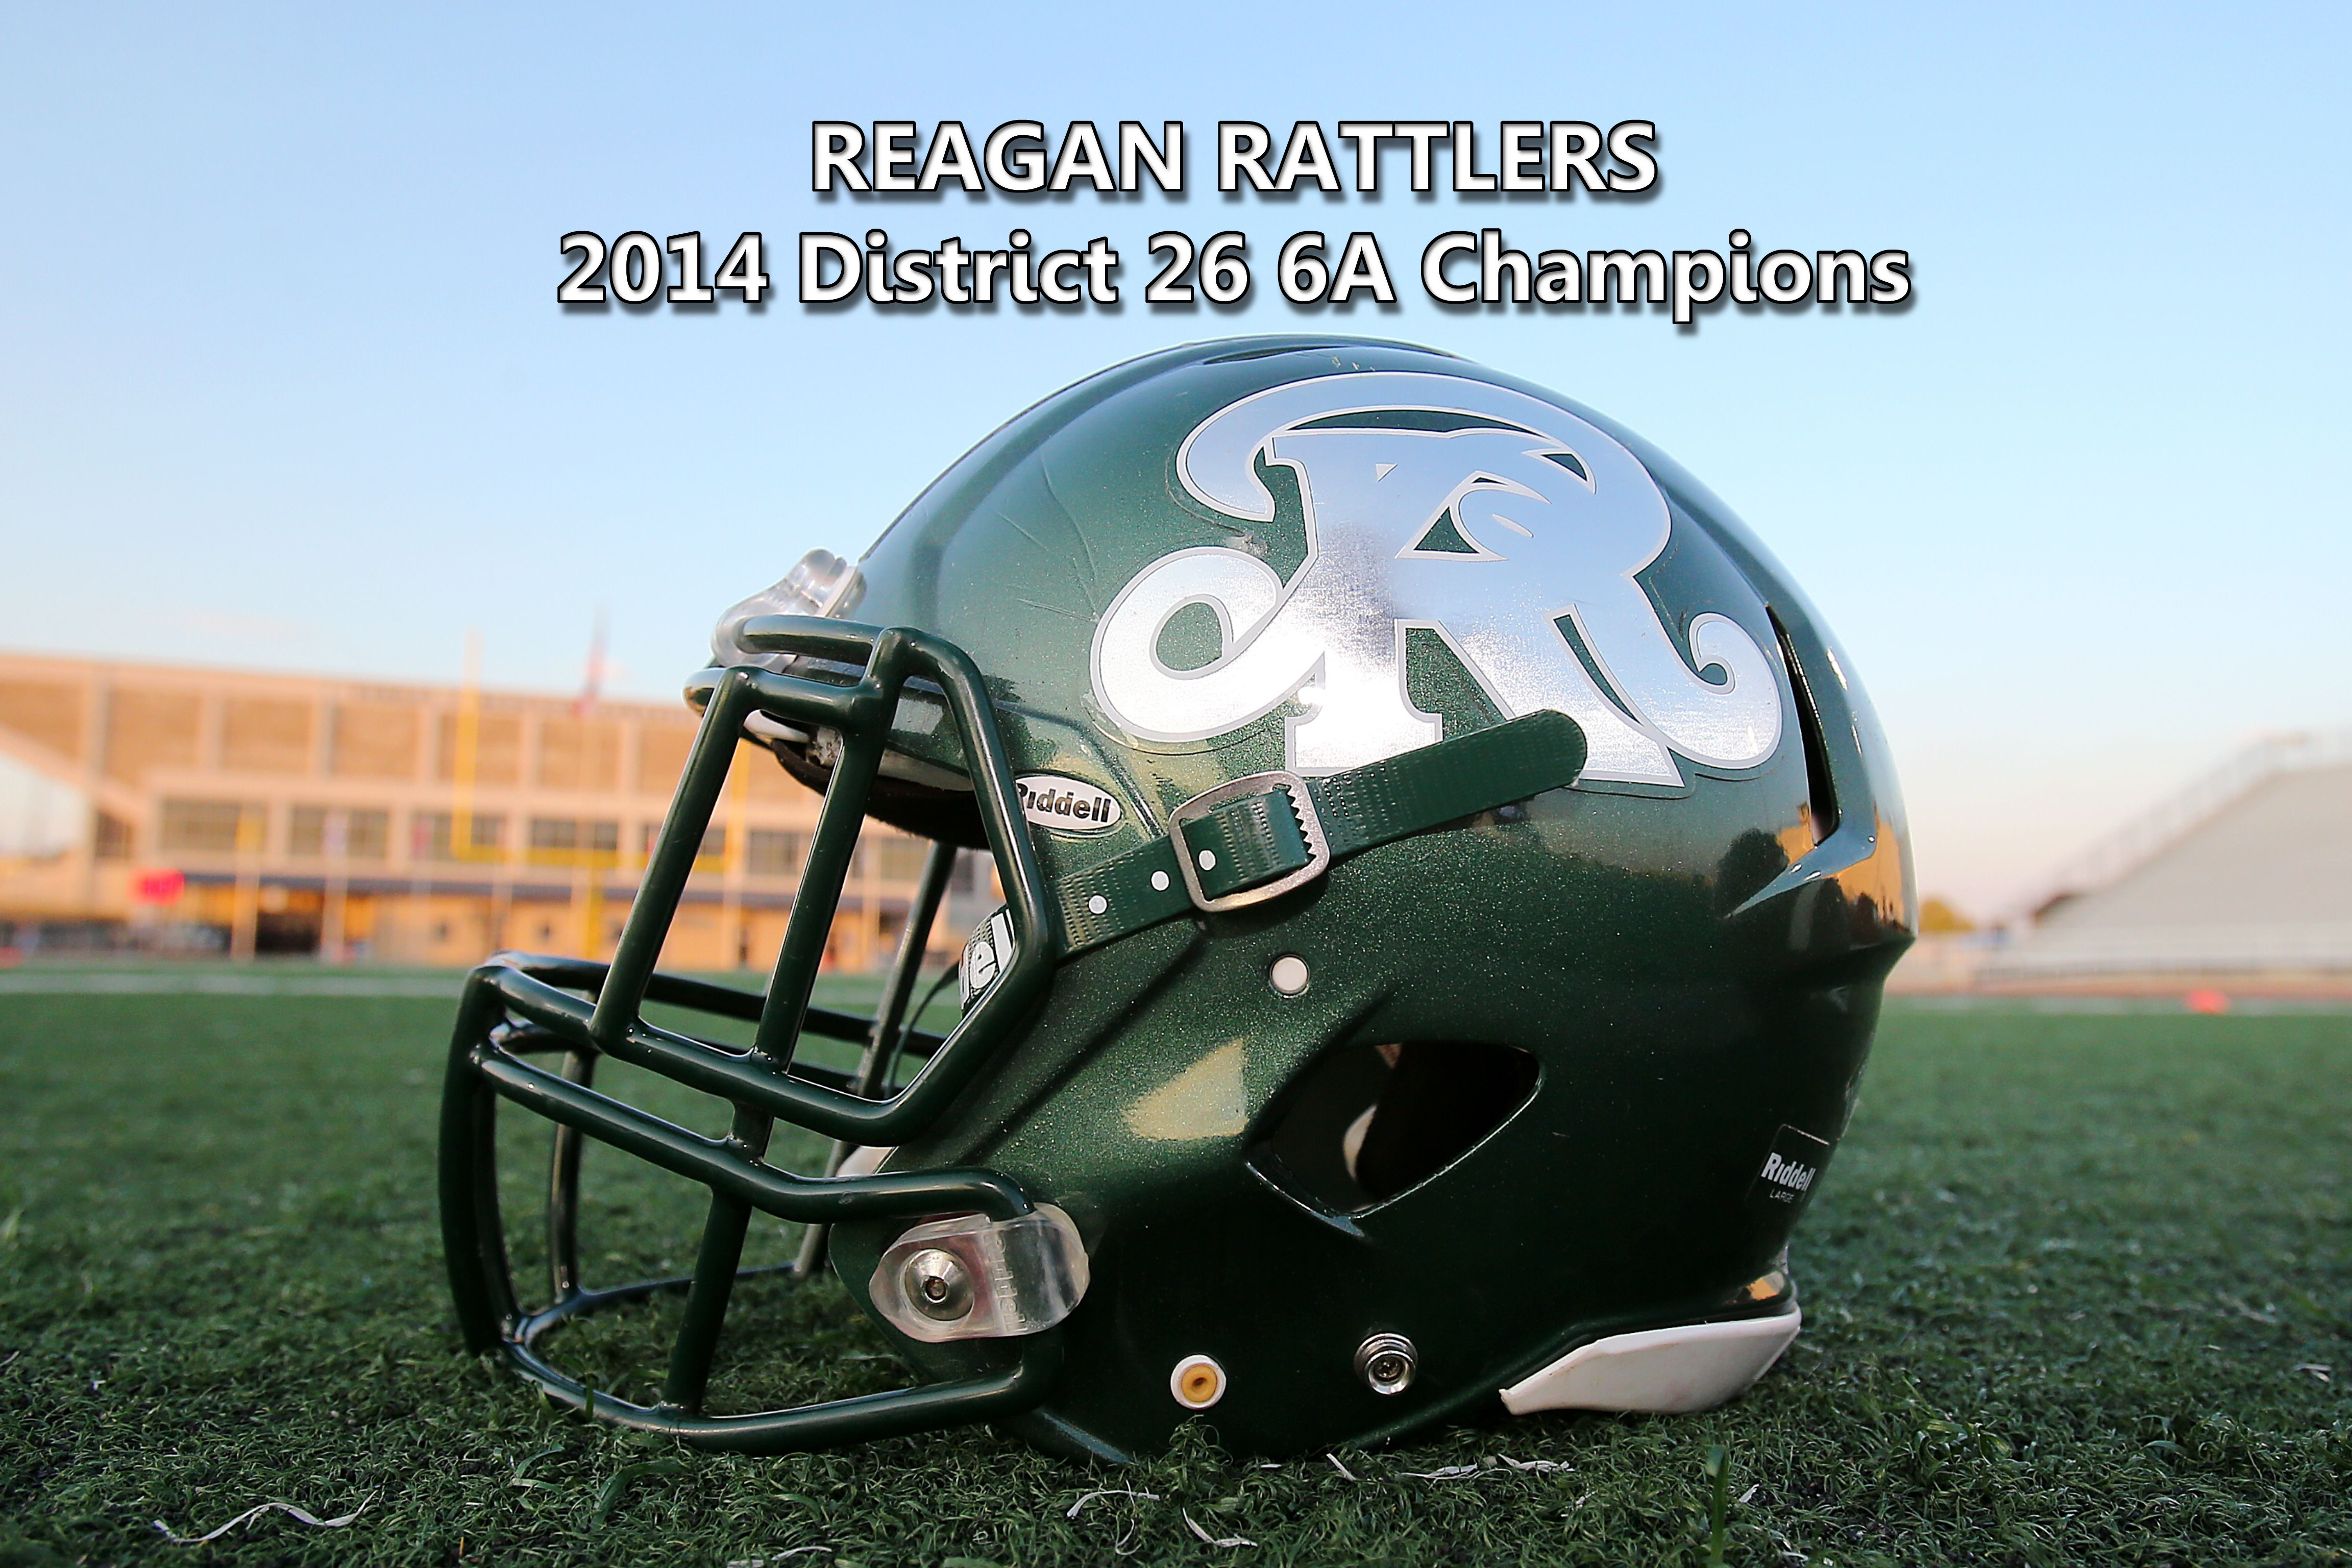 District Champions Helmet